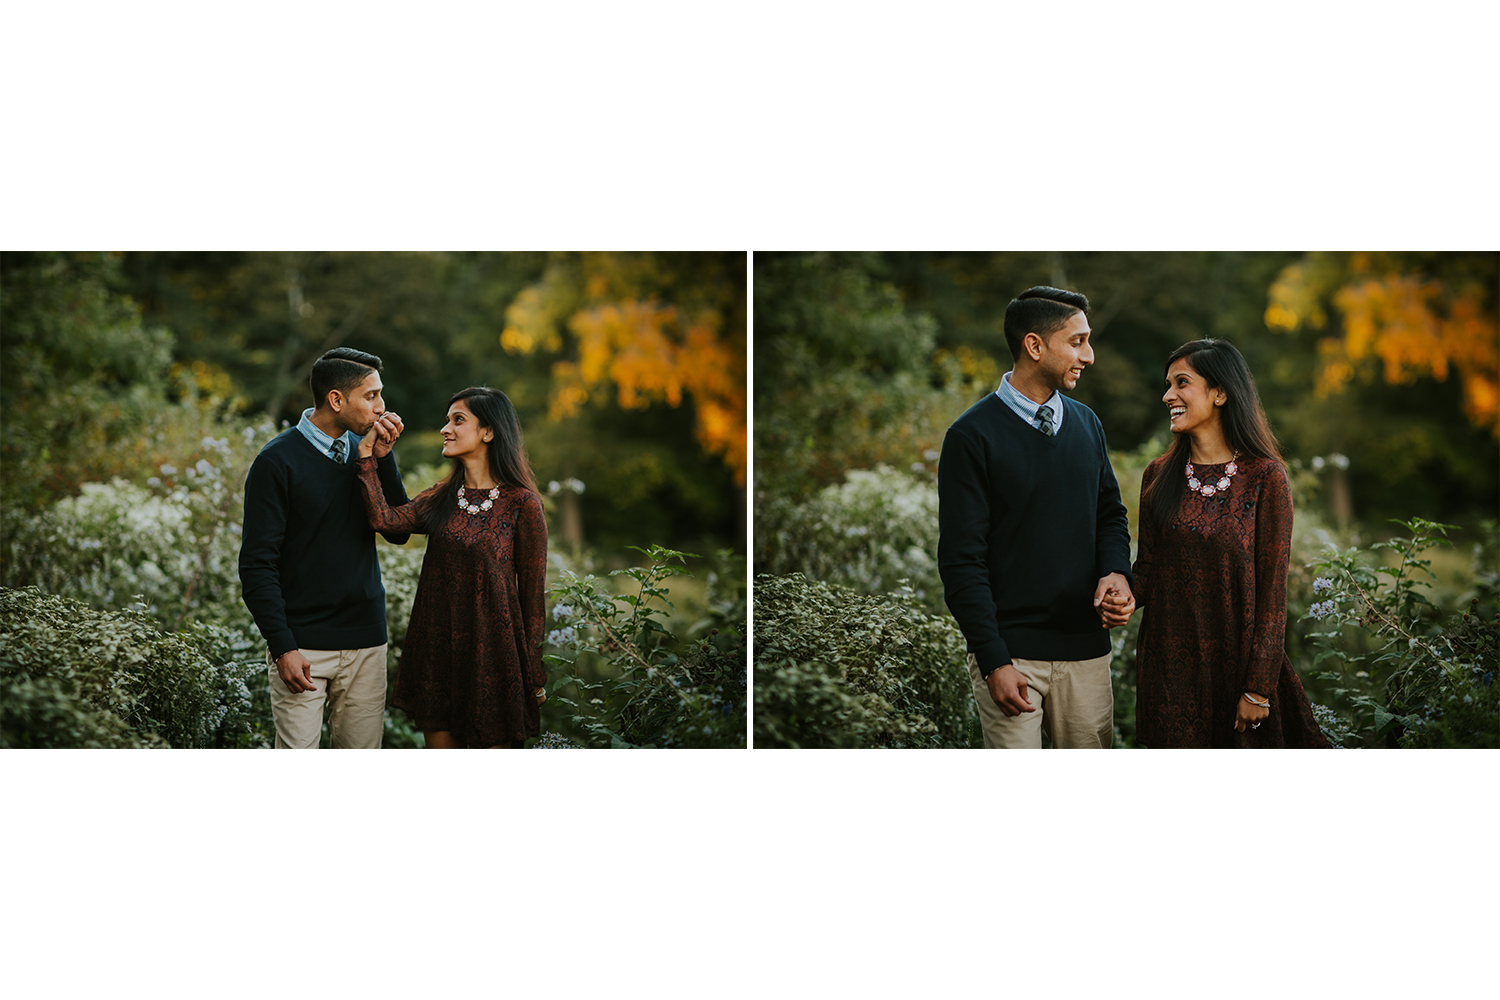 South_Asian_Wedding_Photography_Engagement_Session_012.jpg